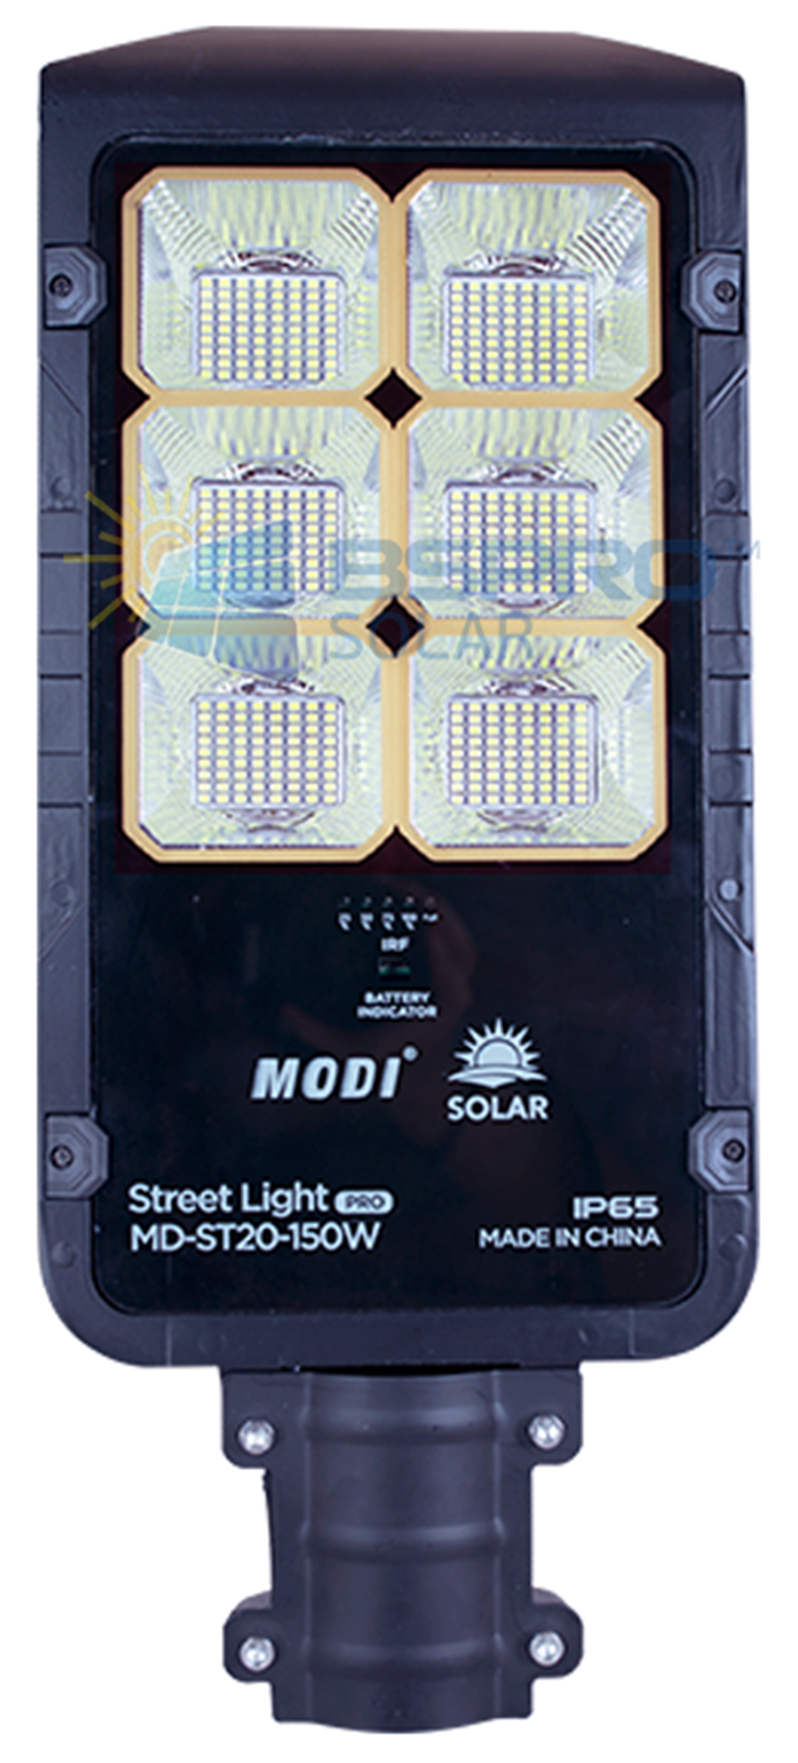 solar street light battery price